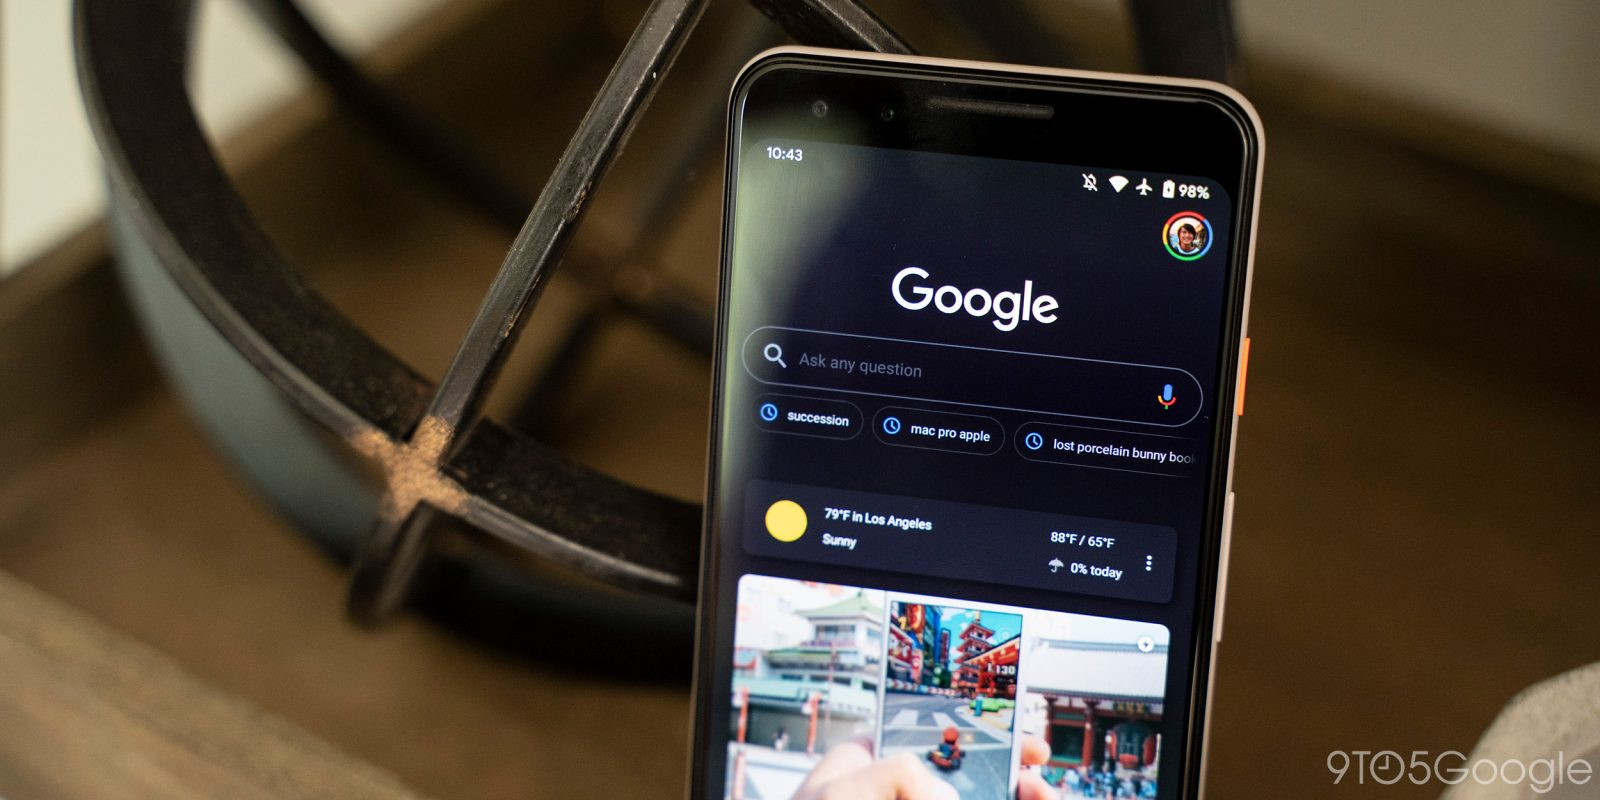 Google app help videos again show Assistant replacing 'Voice search'